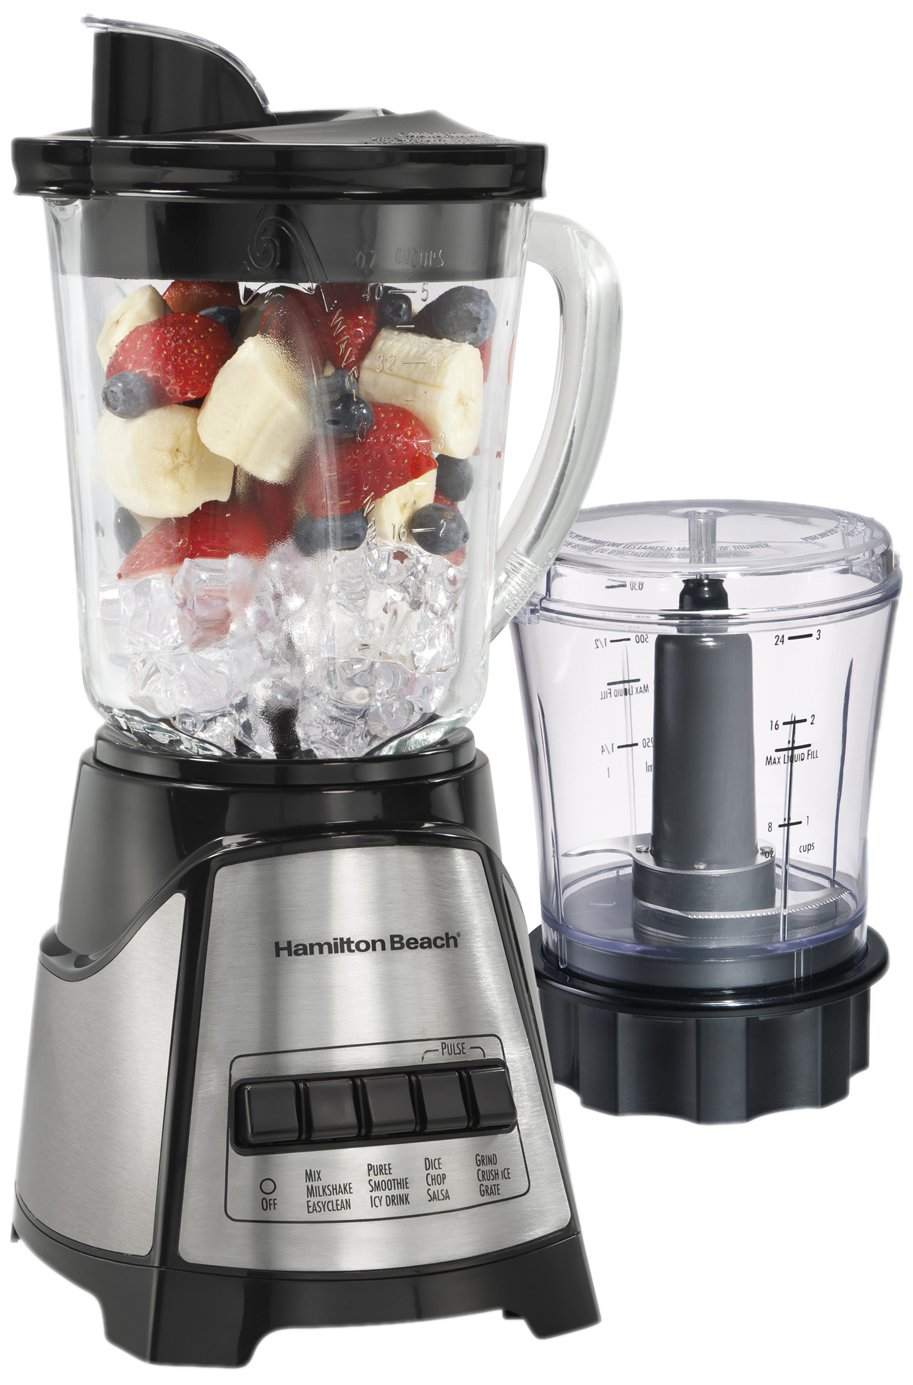 Hamilton Beach 58149 Power Elite Multi-Function Blender, Includes Chopper Attachment